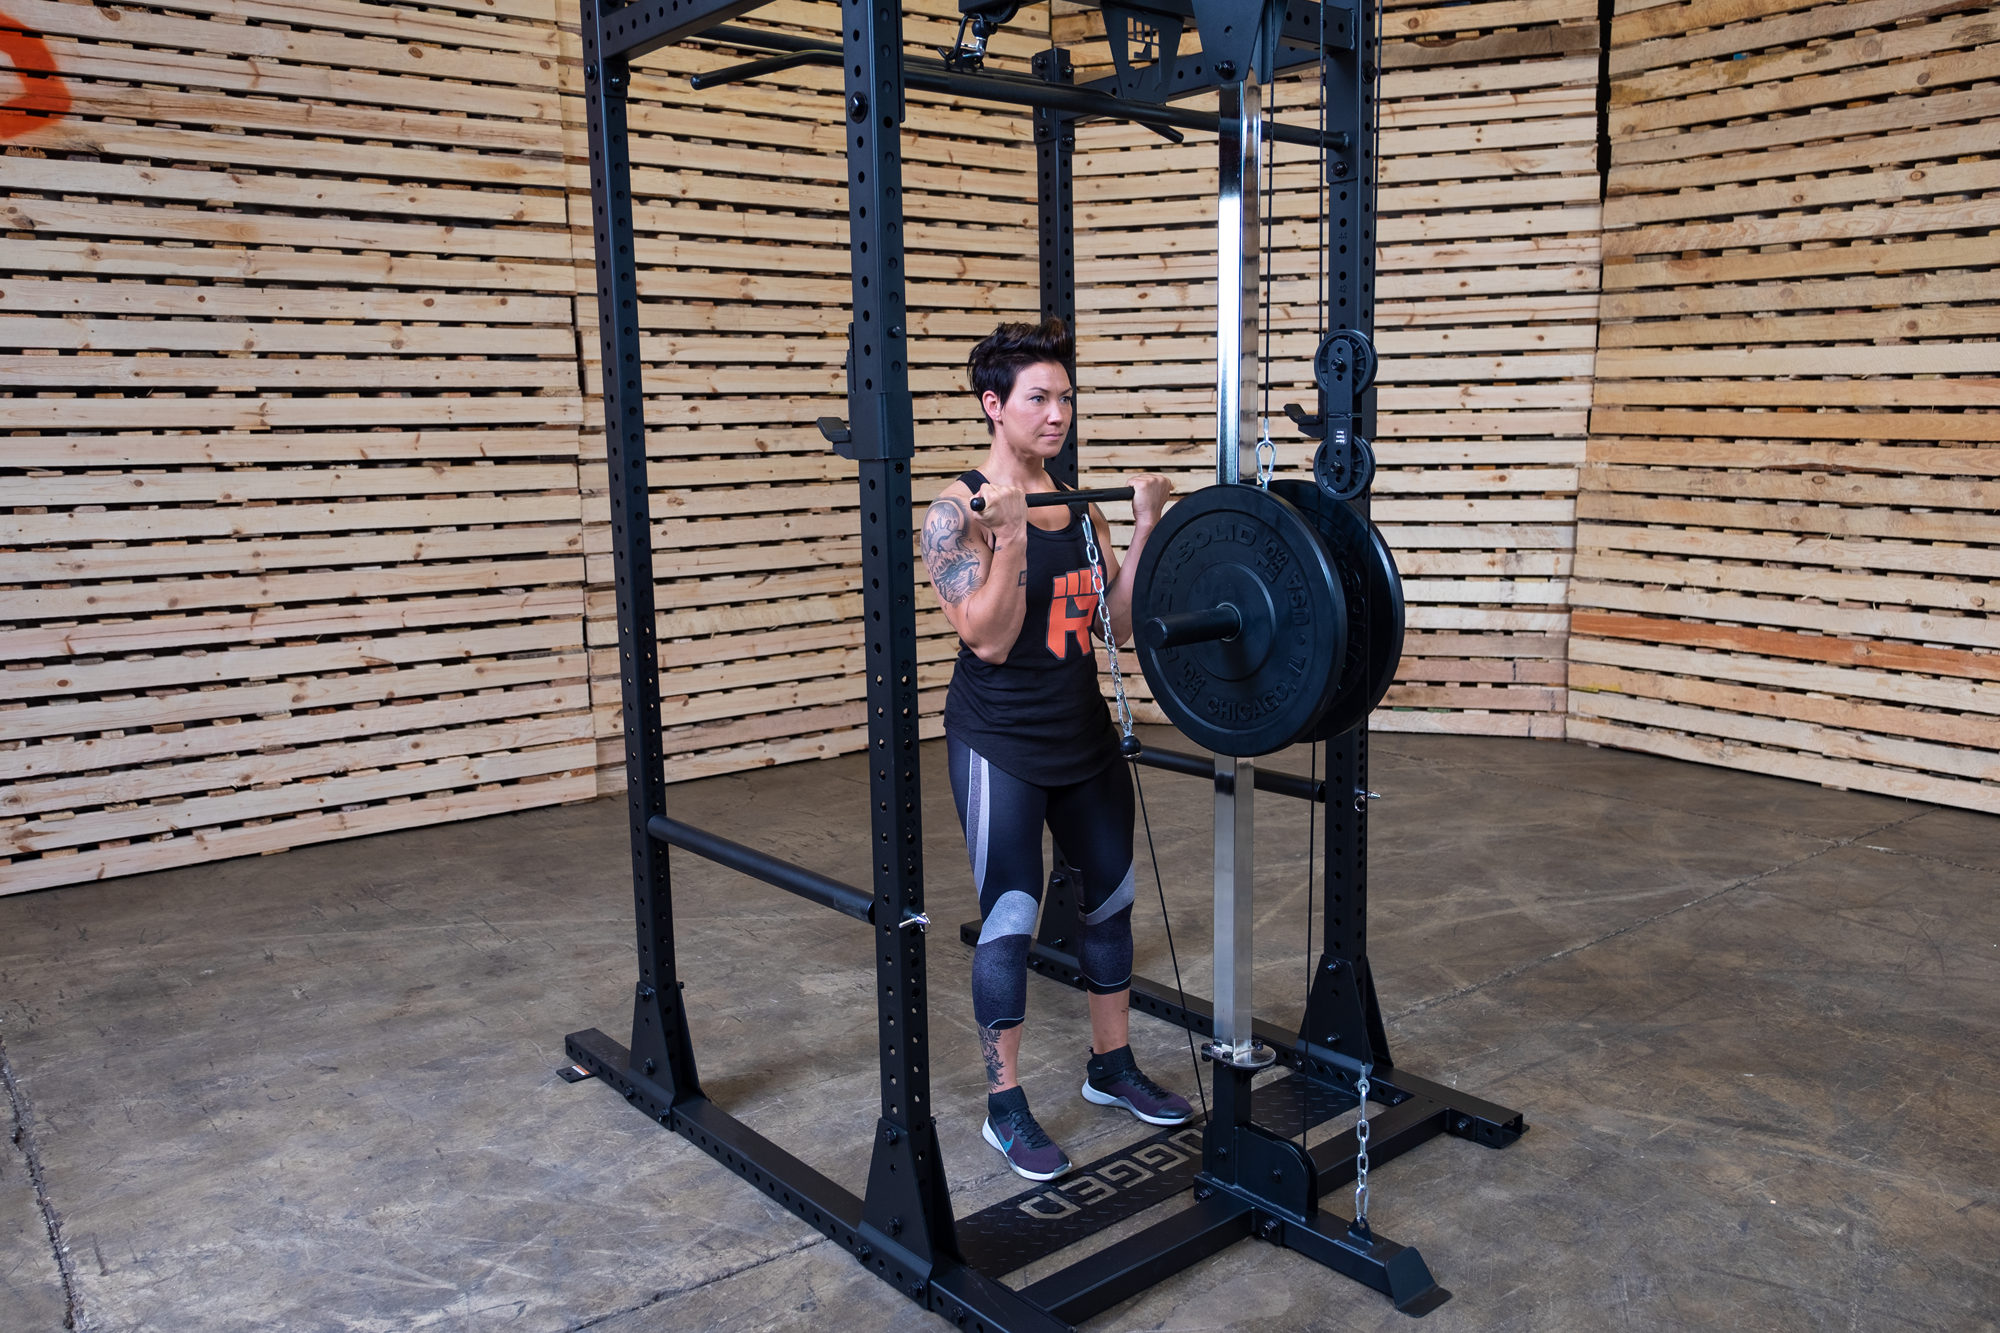 rack rugged lat attachment y100 optional included